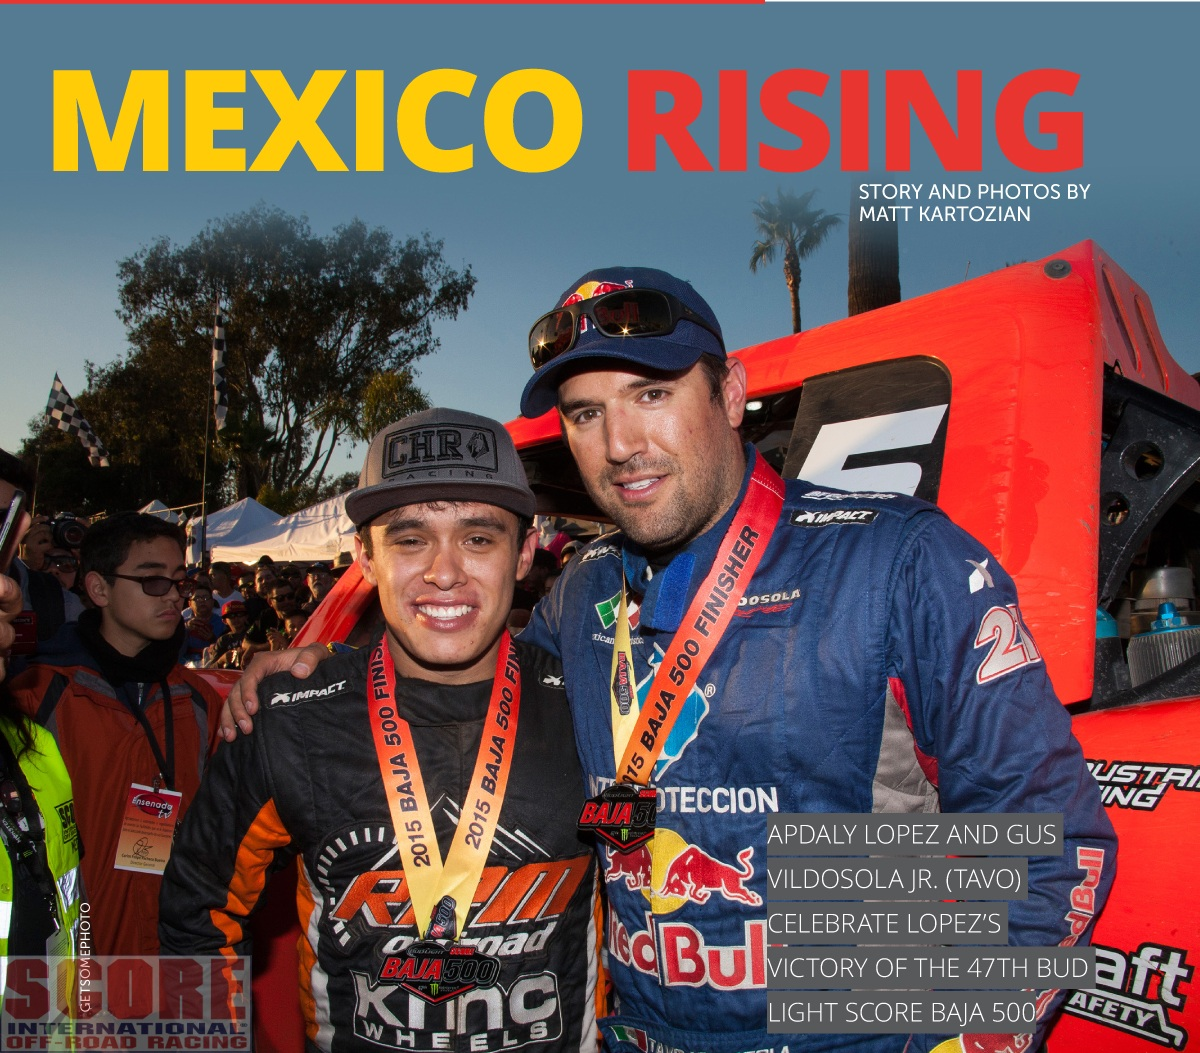 "Apdaly_Lopez, Lalo Laguna and Tavo Vildosola are all from Mexico. And they are the reason Mexico is currently 3-0 in the SCORE World Desert Championship Racing Series following the Bud Light SCORE BAJA 500. Tavo won his third consecutive Bud Light SCORE San Felipe' 250 to open the SCORE season, Laguna took control early and raced to his first-ever Unlimited Trophy Truck and Overall Title in the Inaugural Bud Light SCORE Baja Sur 500, and then Lopez, in June, completed the hat trick for Mexico, becoming the first-ever driver from Mexico to win the 47th running of the world-famous Bud Light SCORE BAJA 500. SCORE Journal explores why this ""Mexico Rising"" is happening."